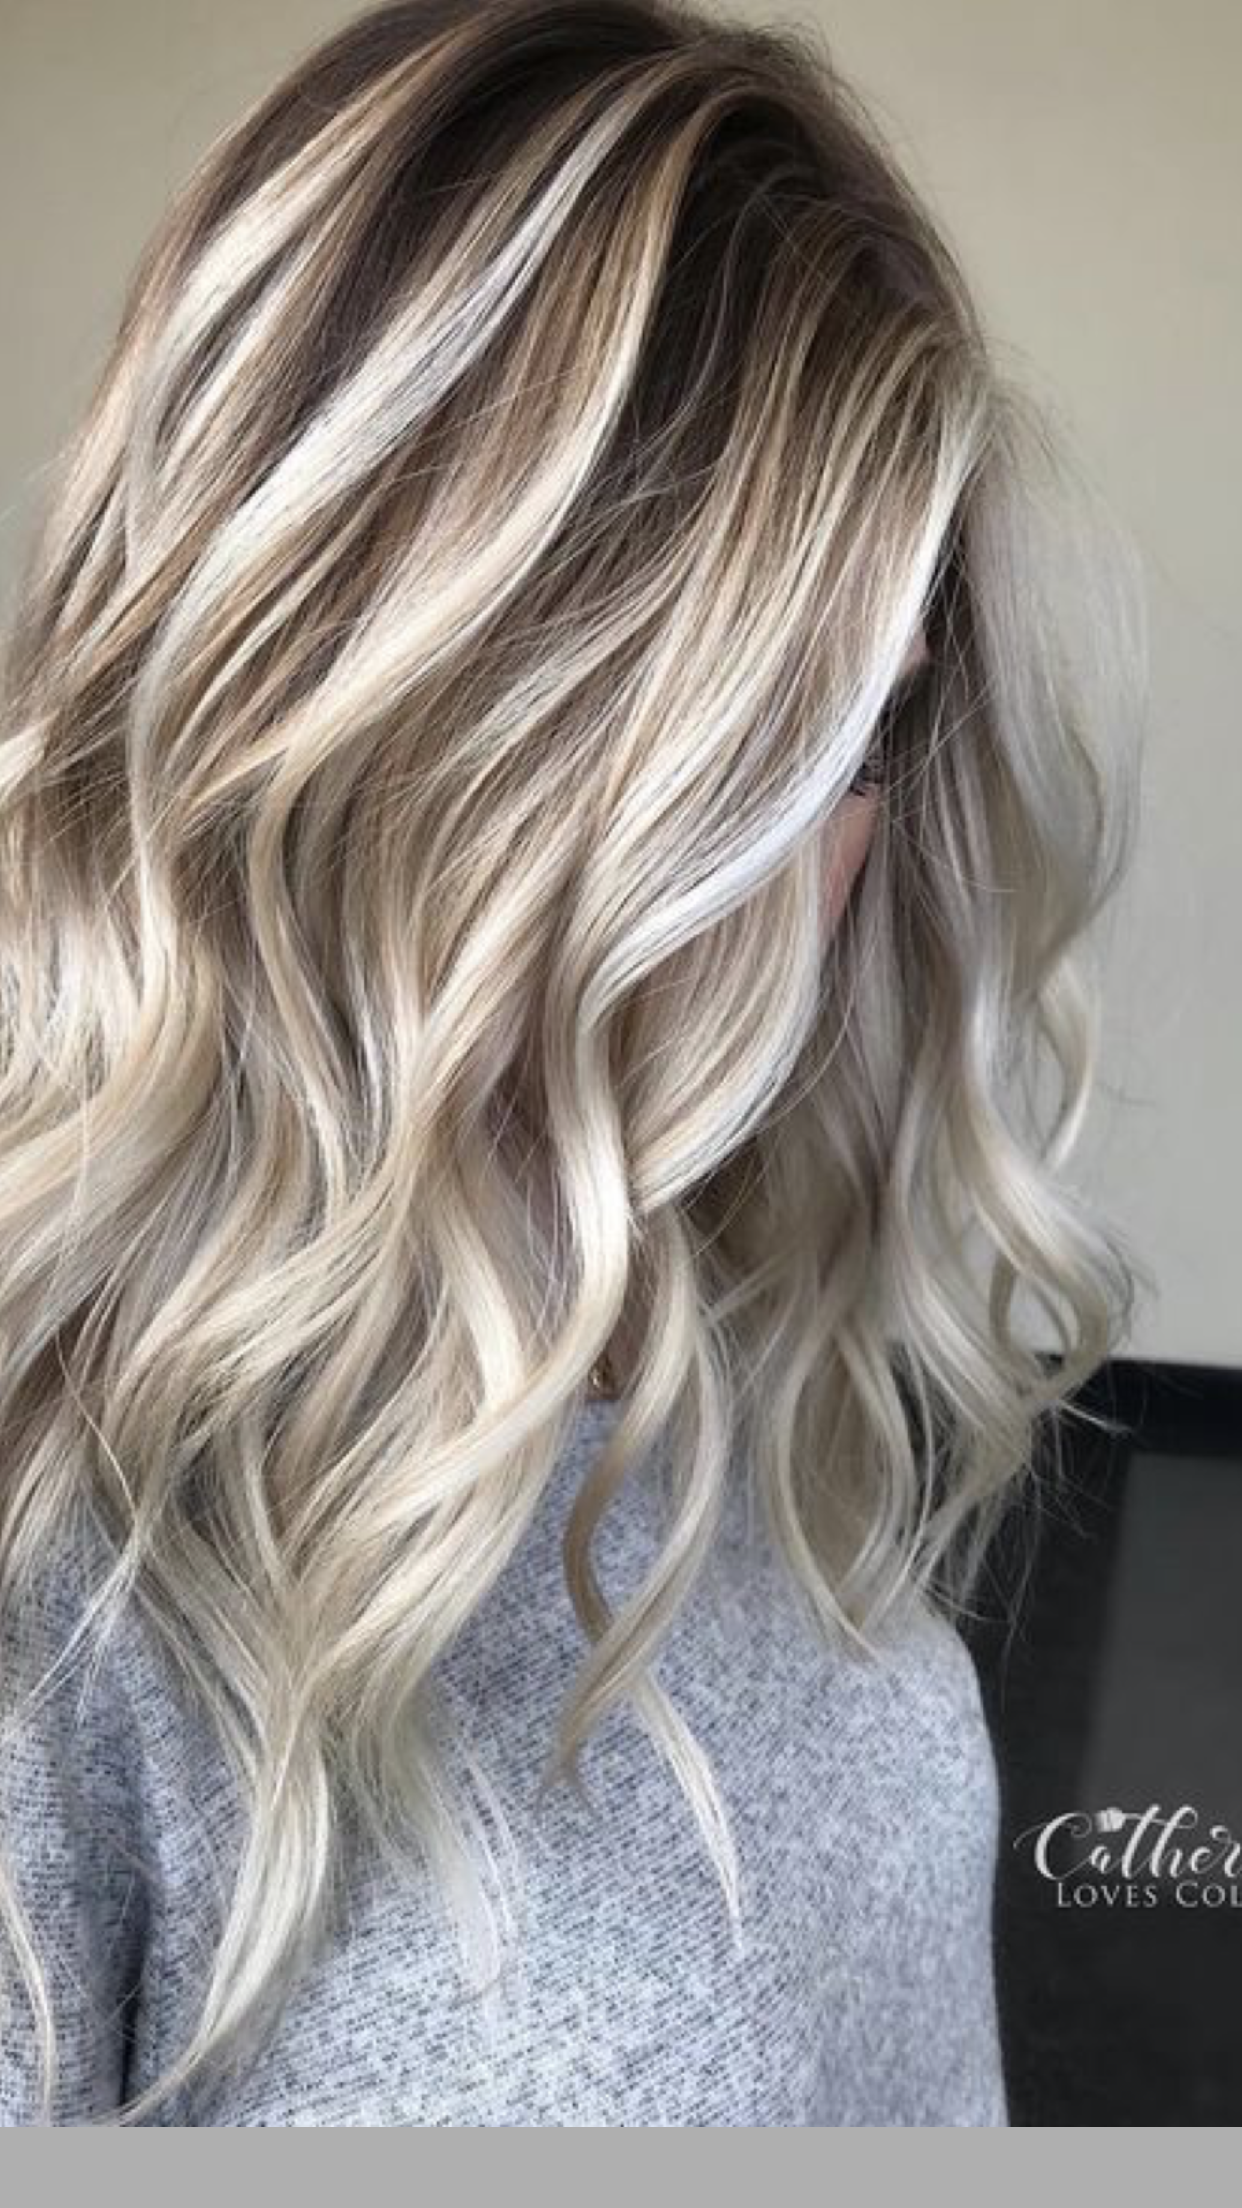 Pin By Penny Bingham On Potential Winter Hair Colour For Blondes White Blonde Hair Winter Hair Color